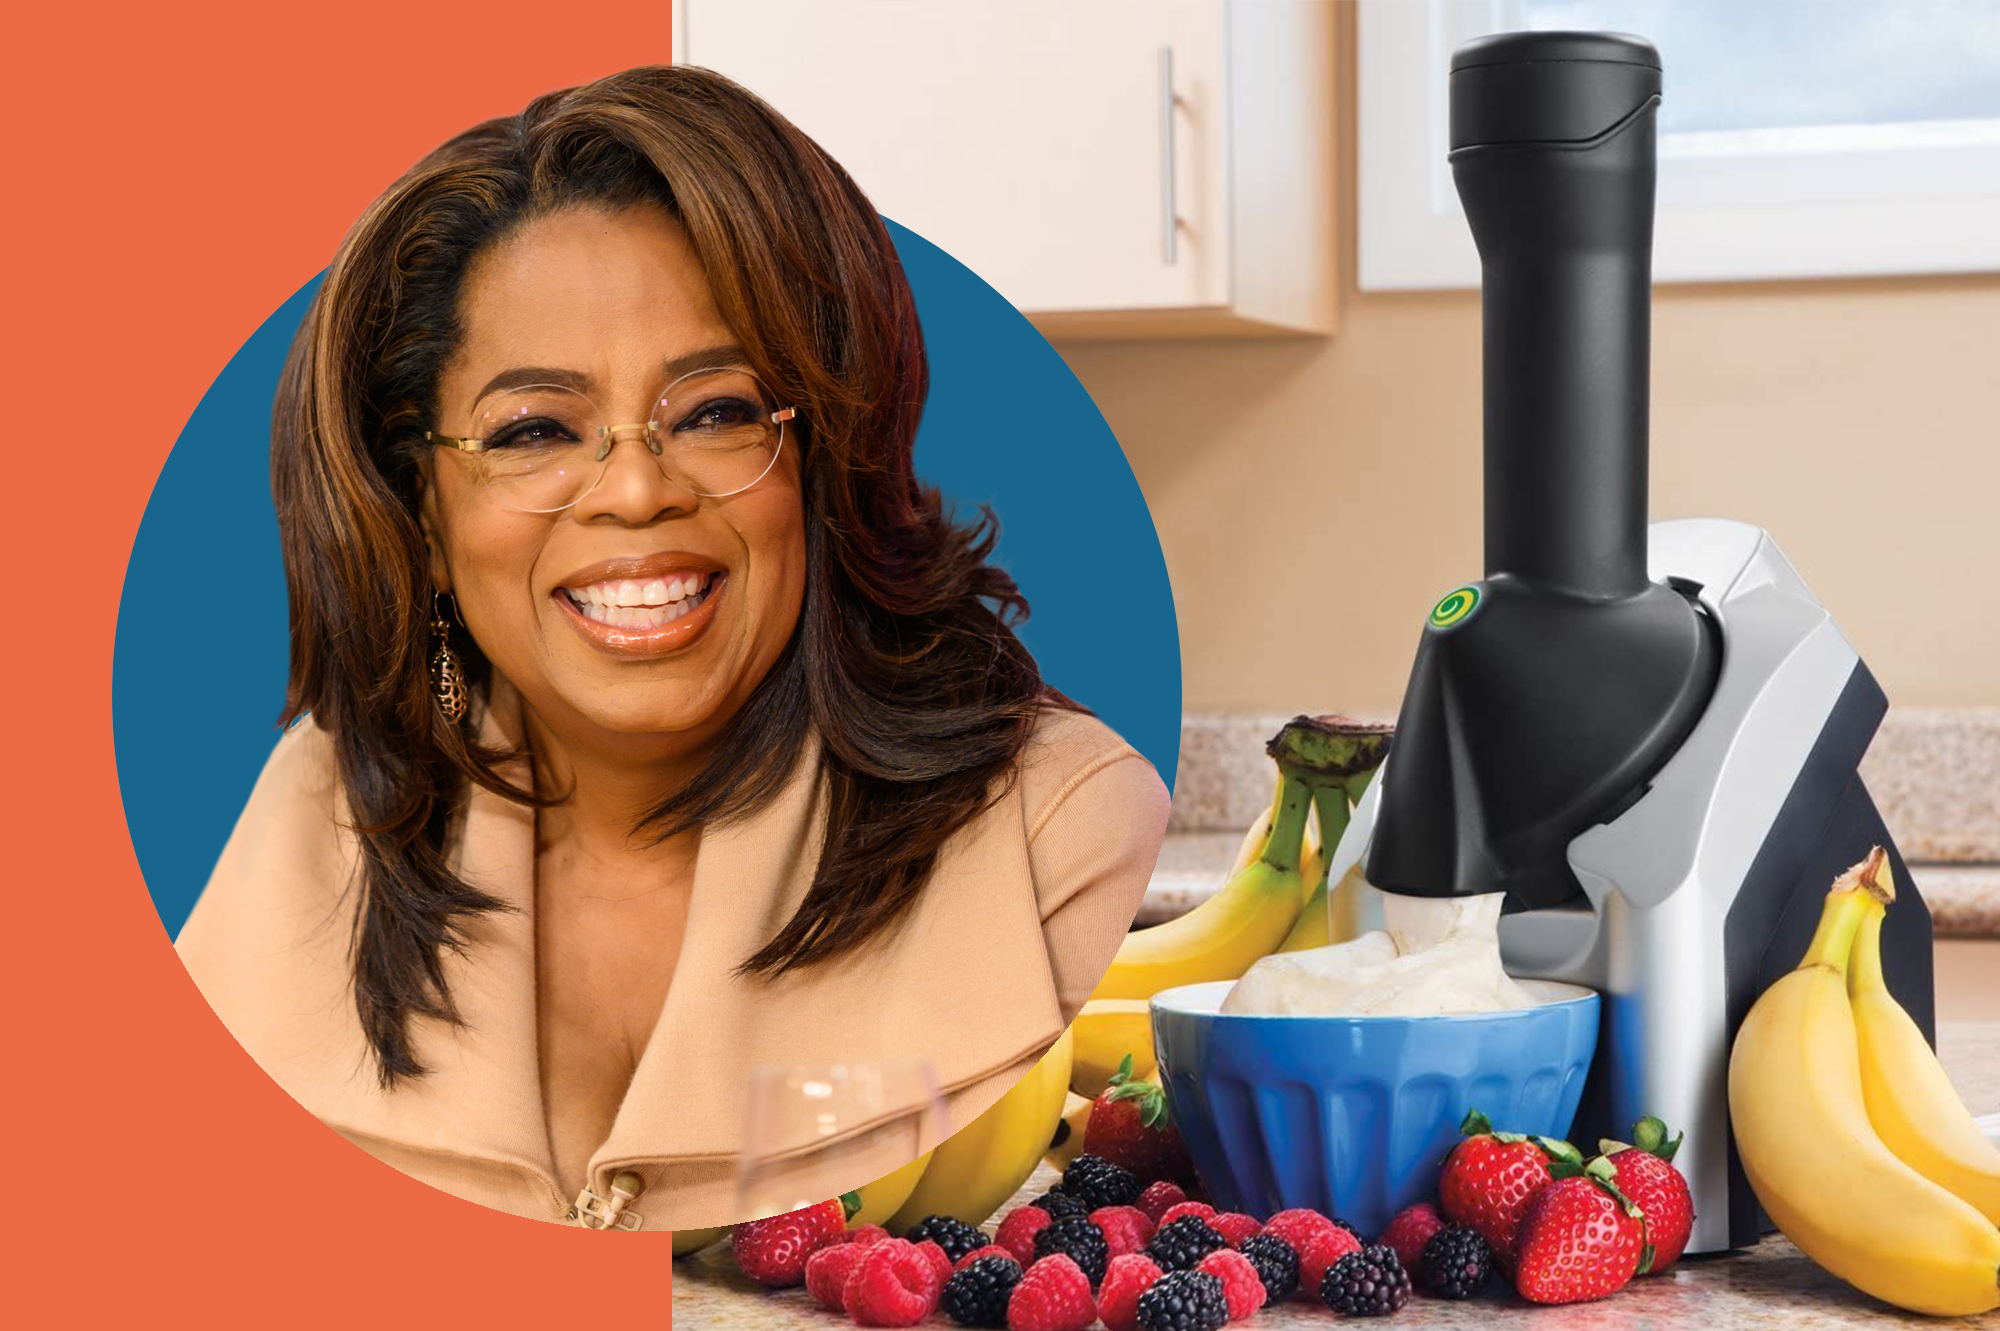 Portrait of Opray Winfrey and photo of Yonanas product